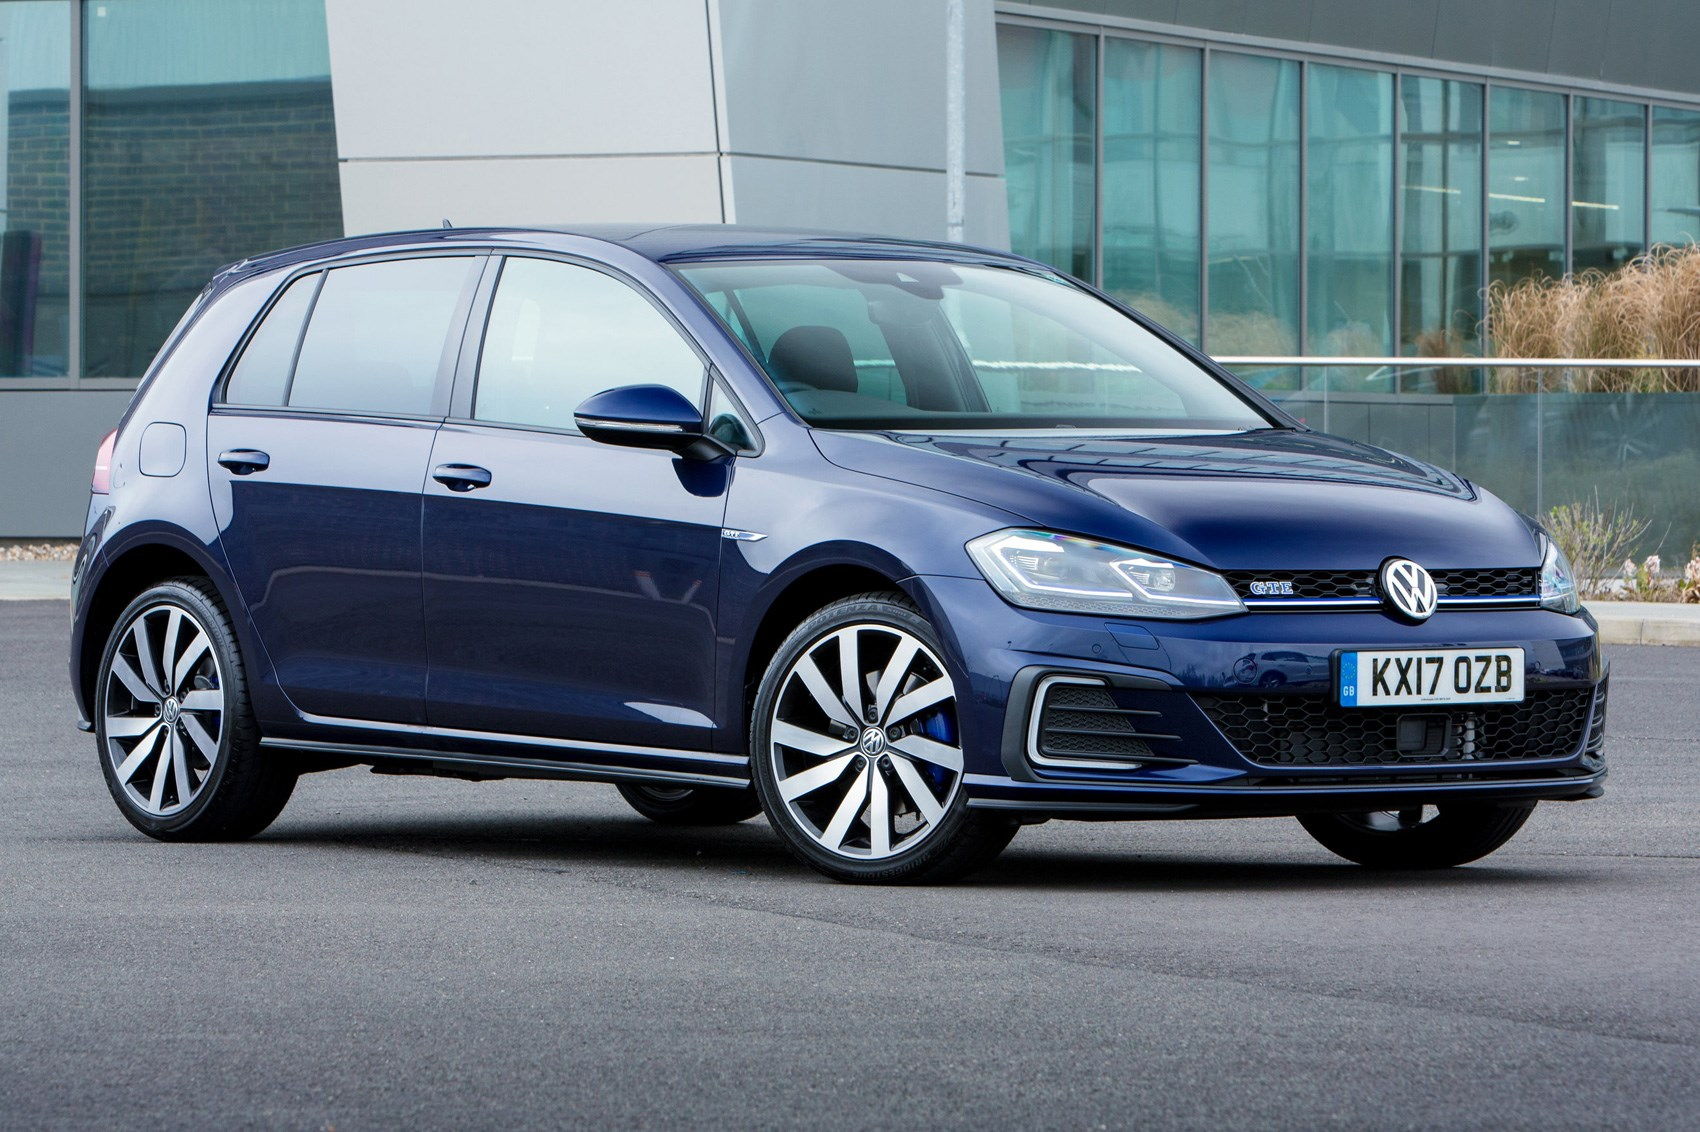 Vw Golf Gte Hybrid Specs Price Pictures News And More Car Magazine